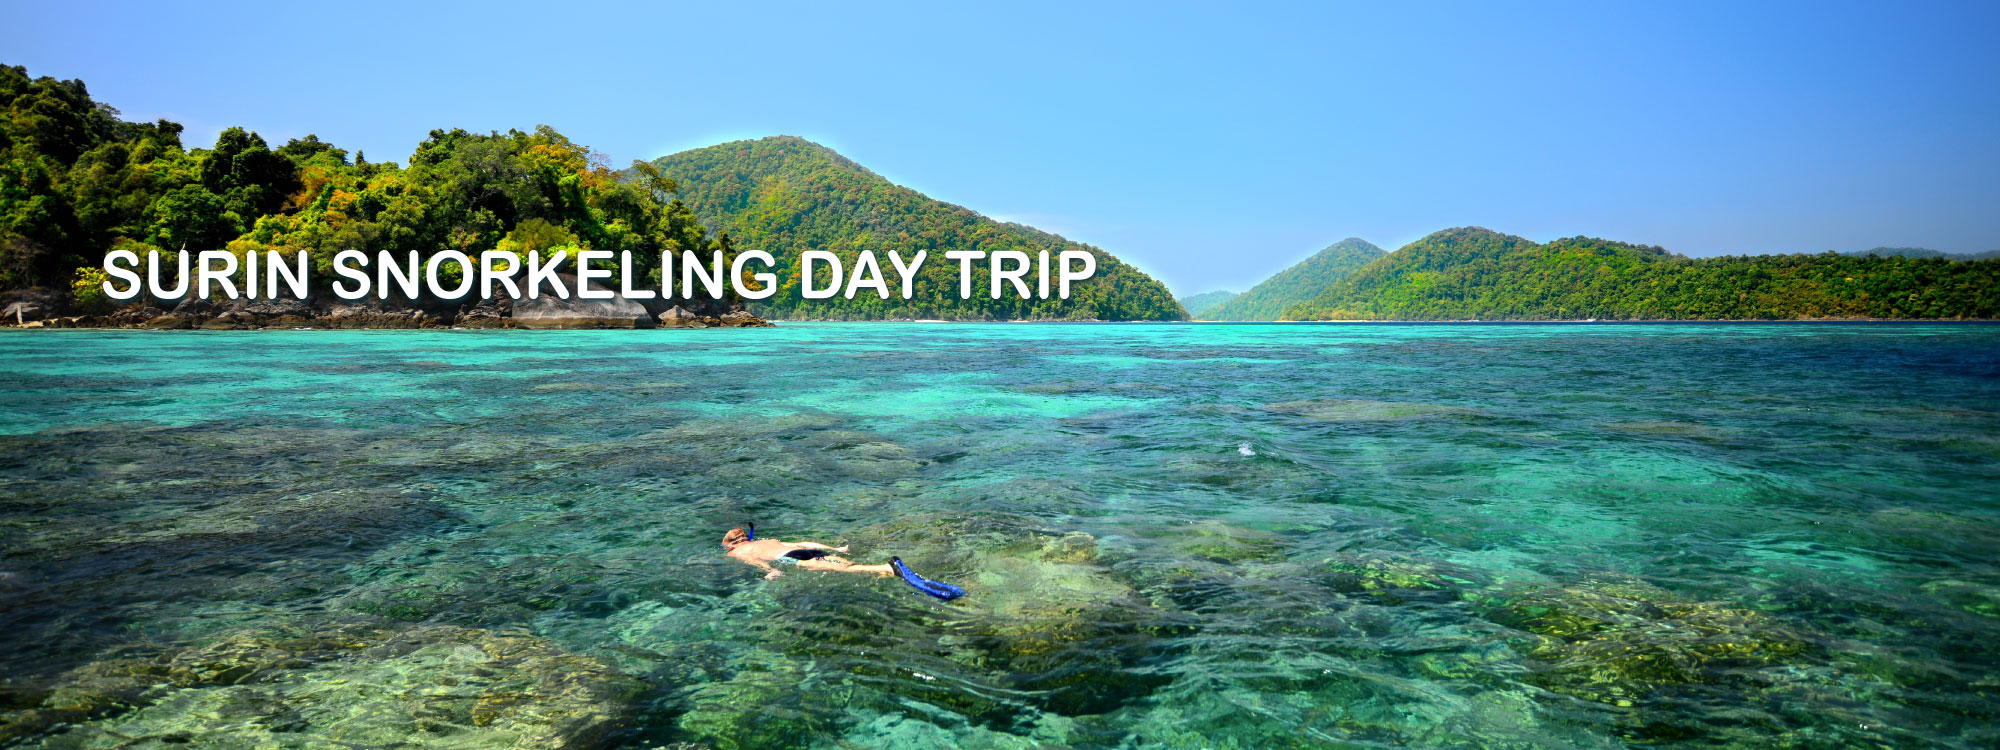 Surin Snorkeling Tour Packages